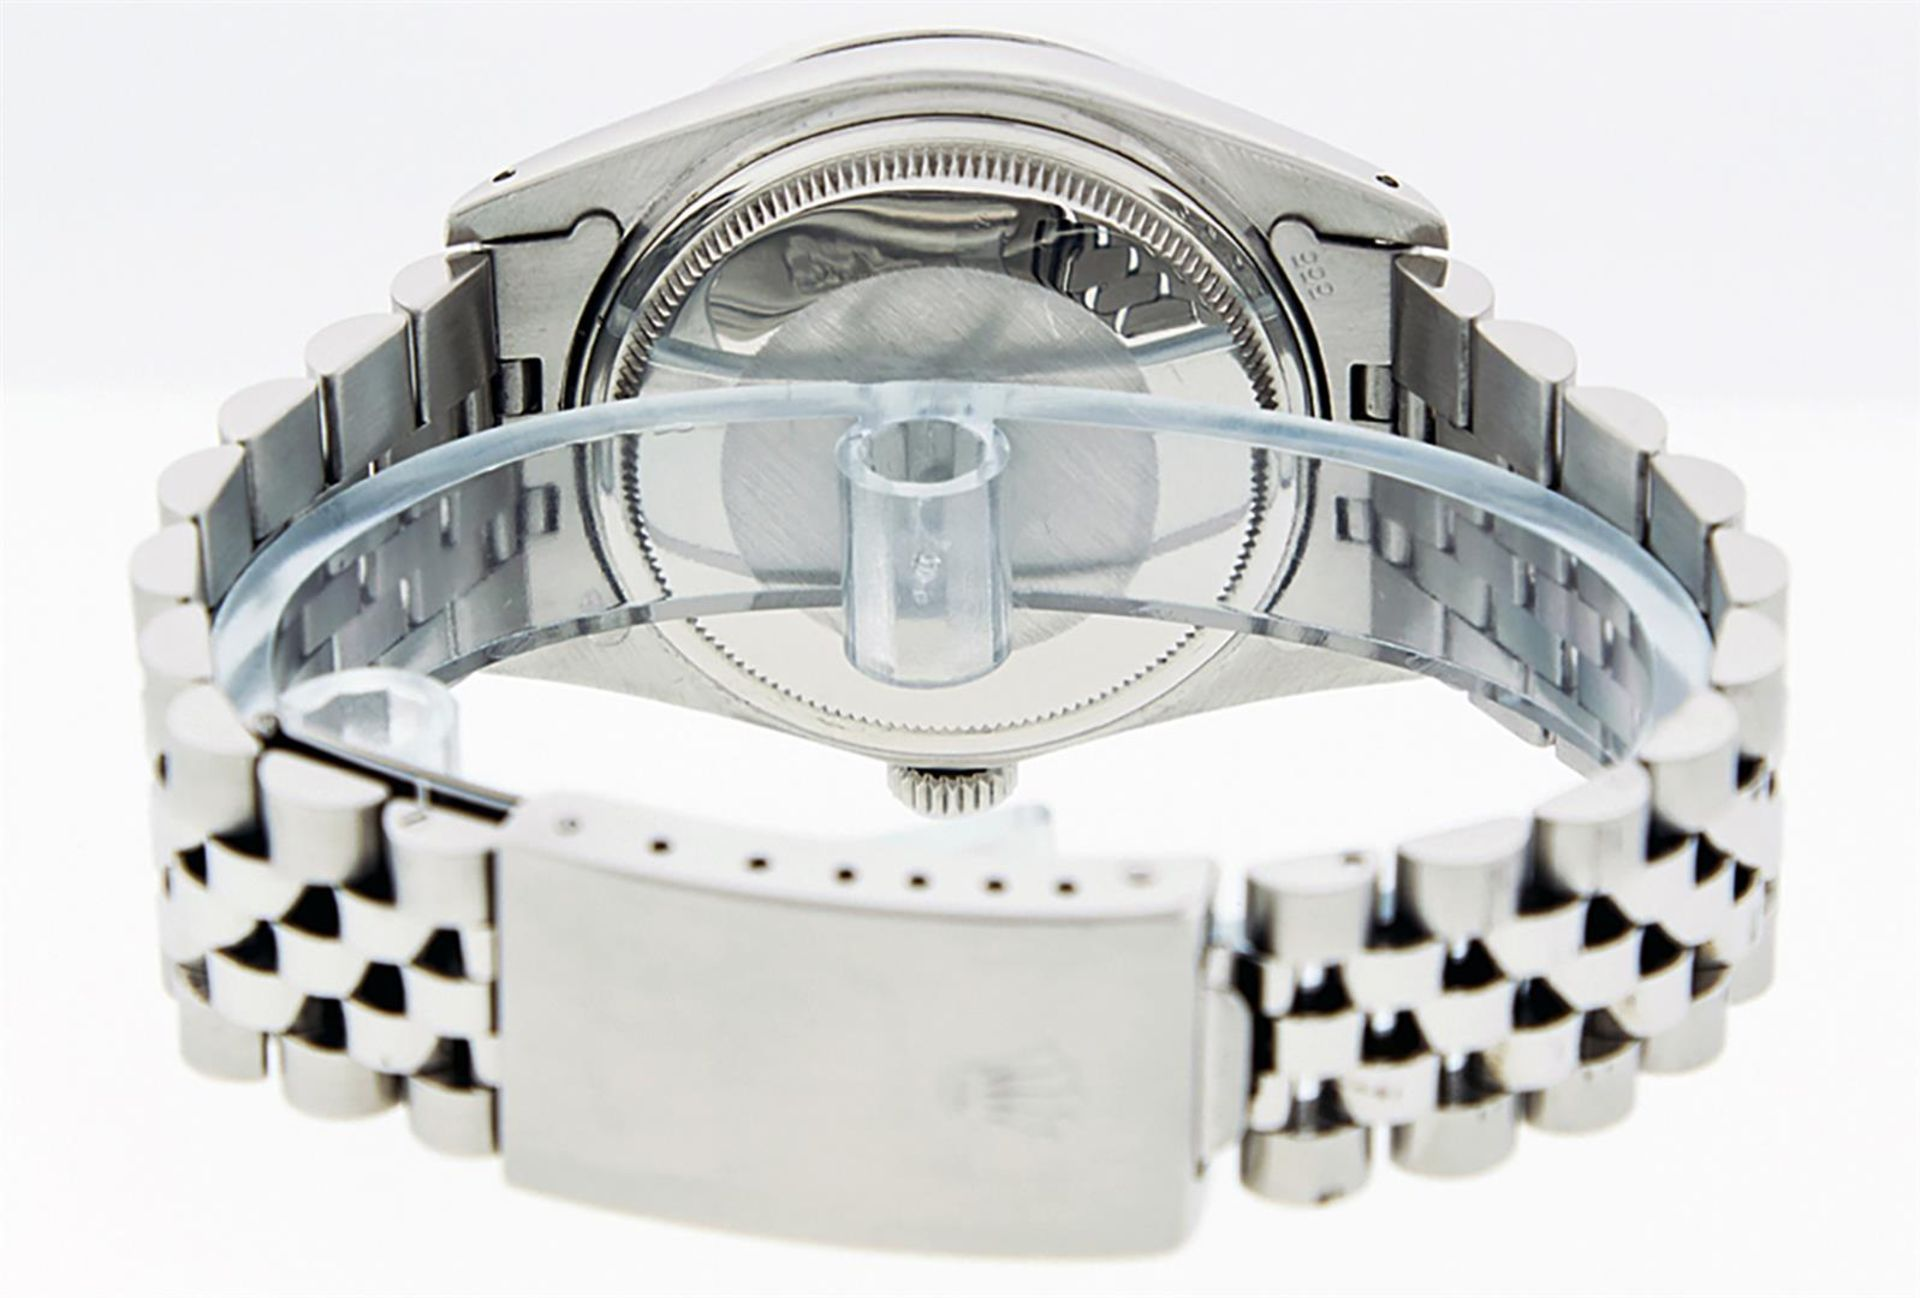 Rolex Mens Stainless Steel Black Diamond & Emerald Oyster Perpetual Datejust Wri - Image 9 of 9